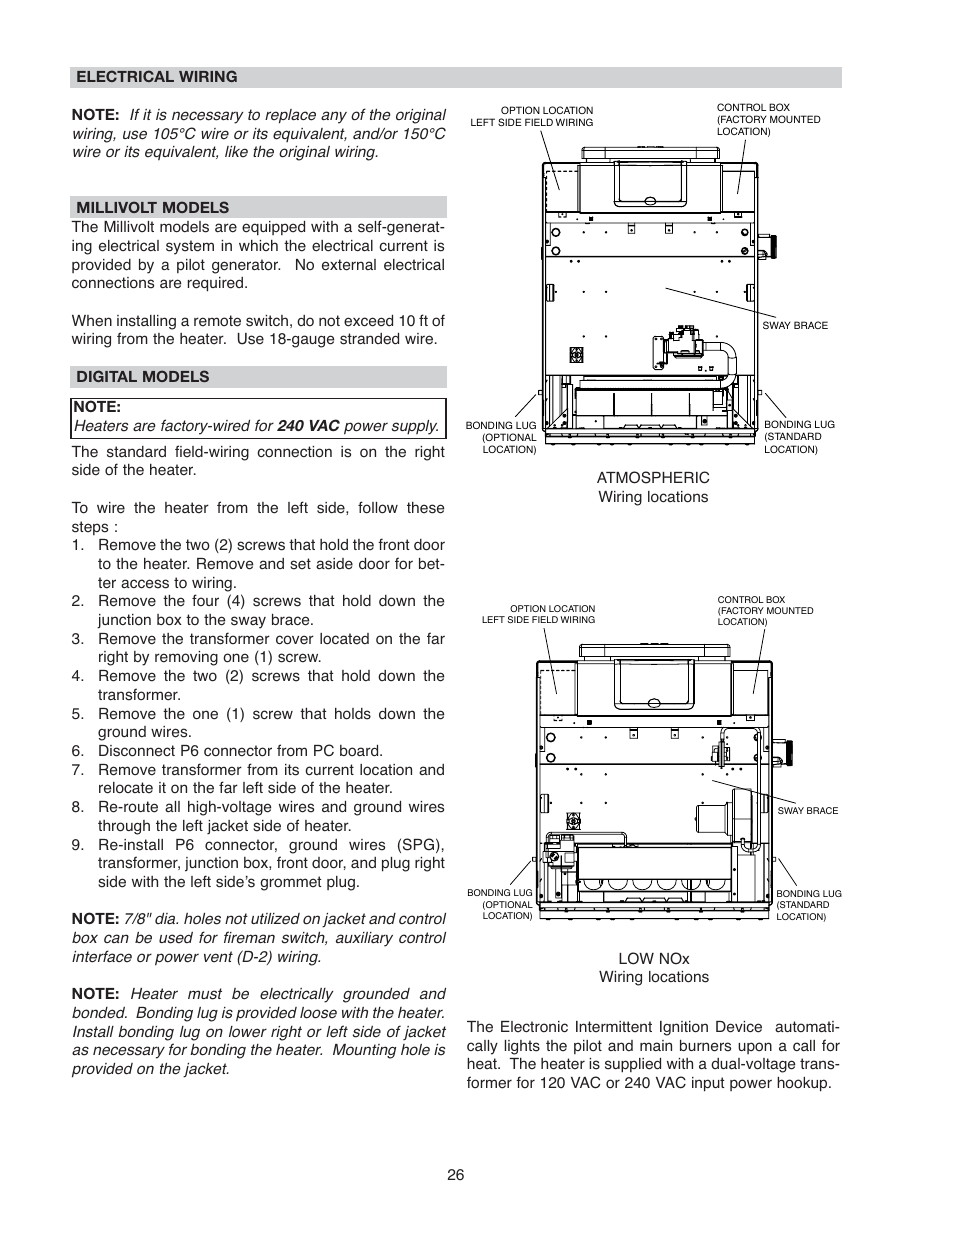 Raypak 266a User Manual Page 26 55 Also For 406a Electrical Wiring Jacket